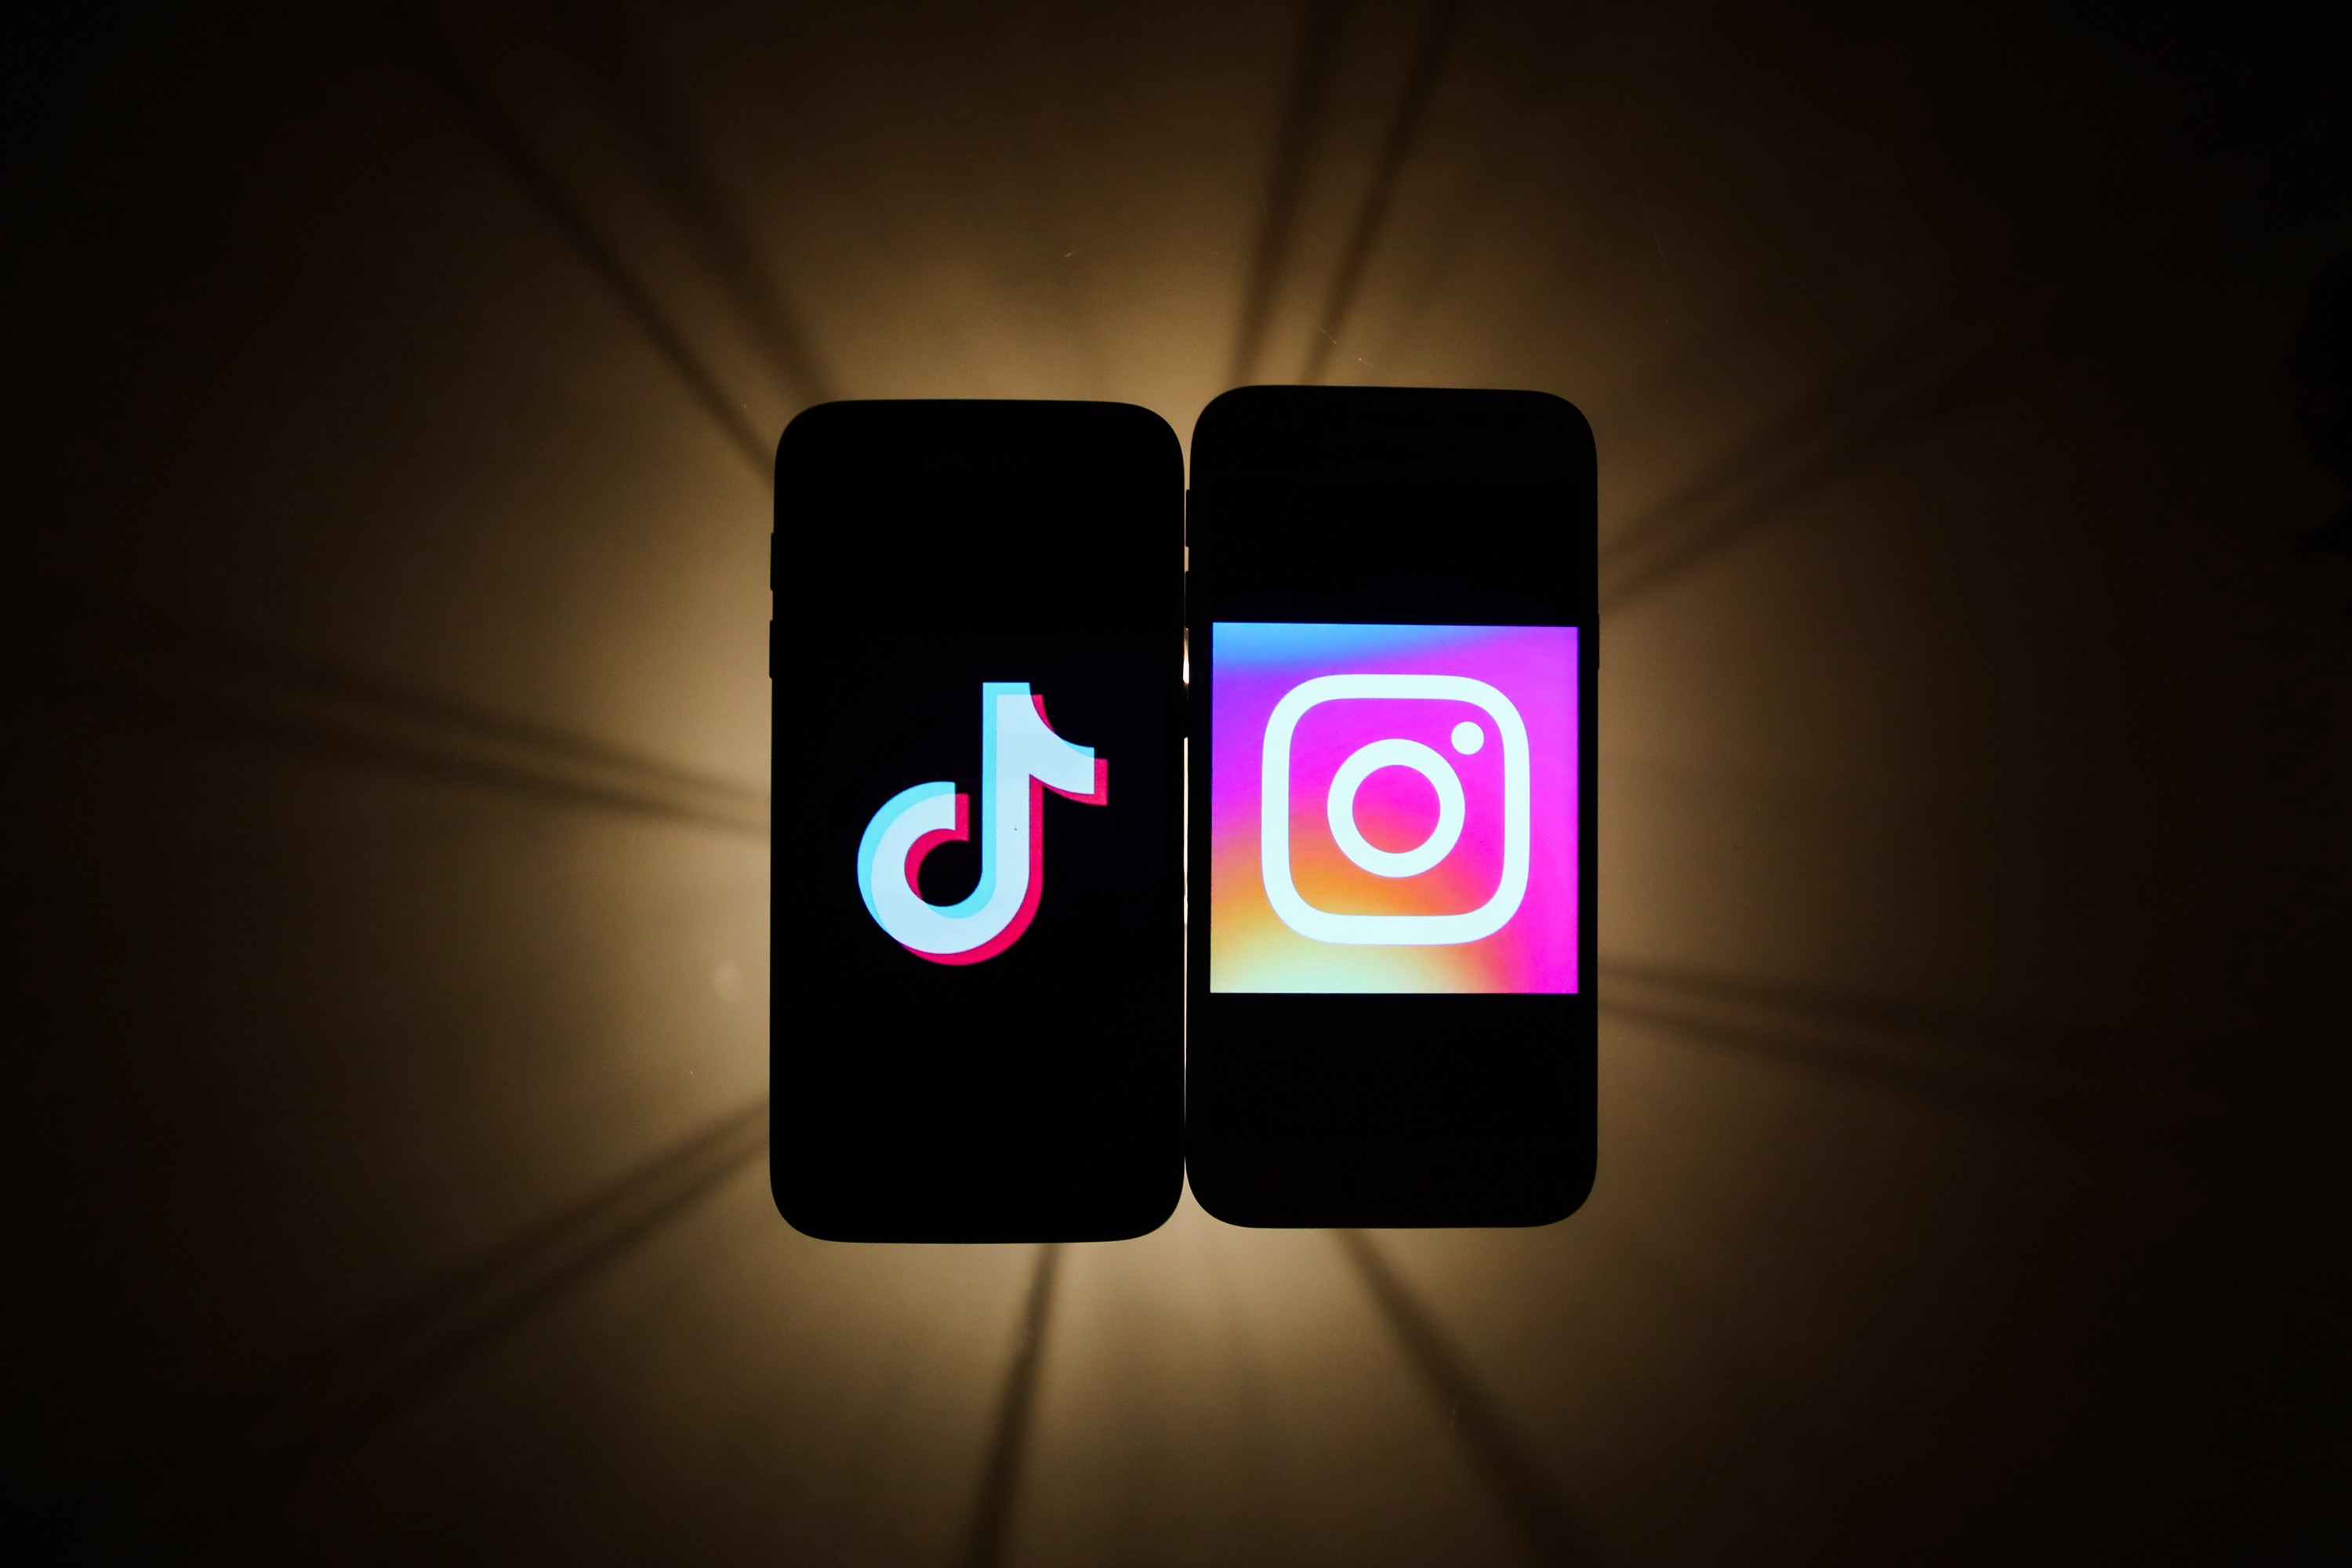 TikTok and Instagram logos are seen displayed on a phone screens in this photo illustration.